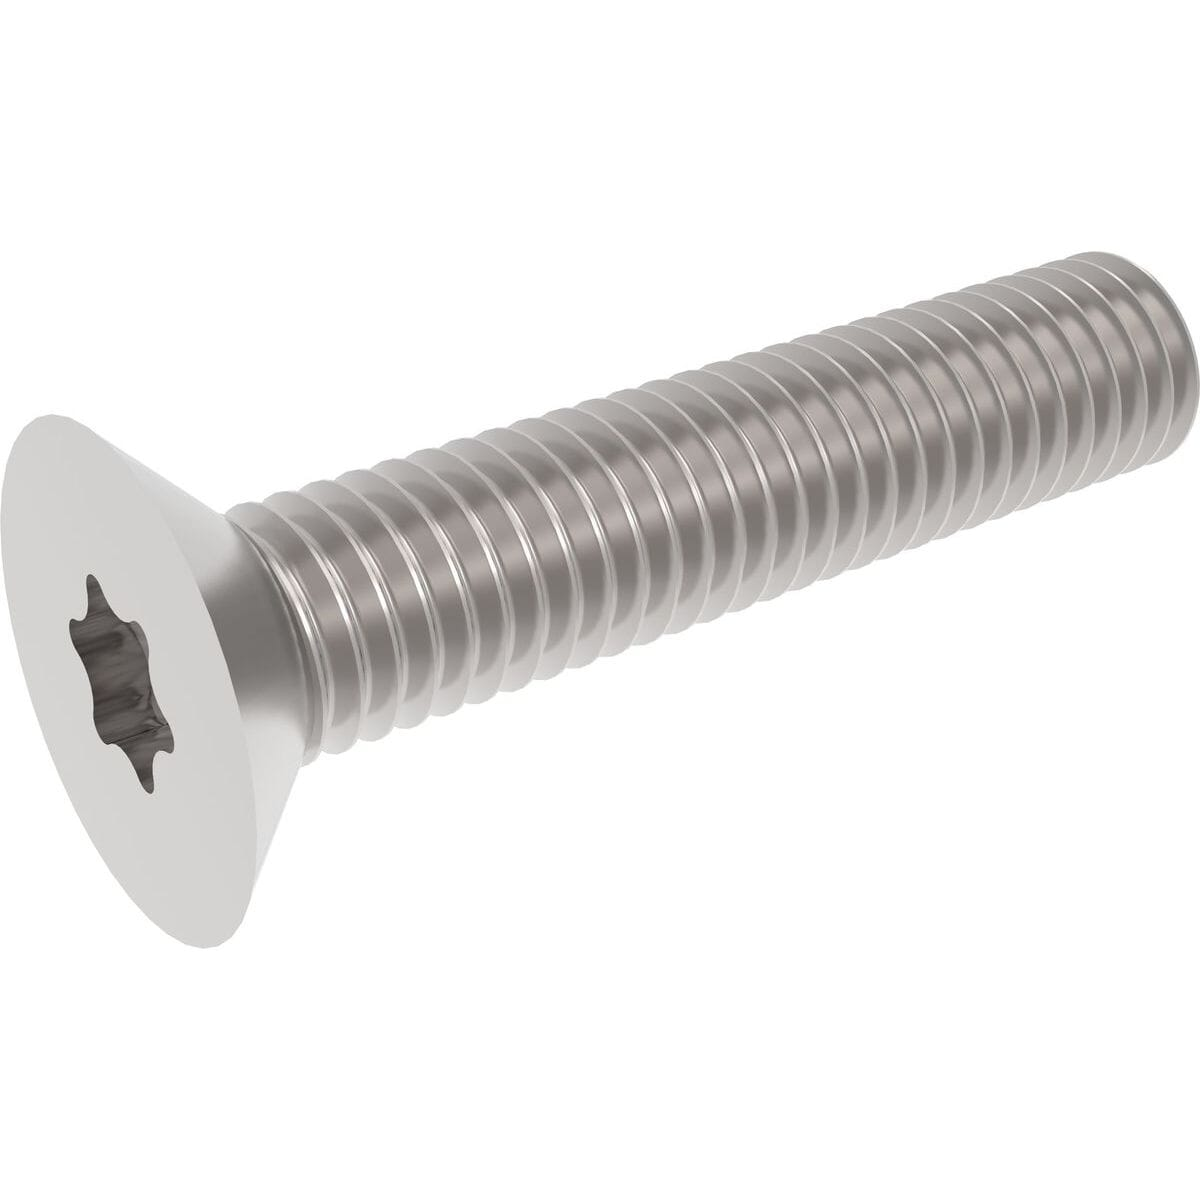 M6 x 85mm Torx Countersunk Screws (ISO 14581) - Stainless Steel (A2)